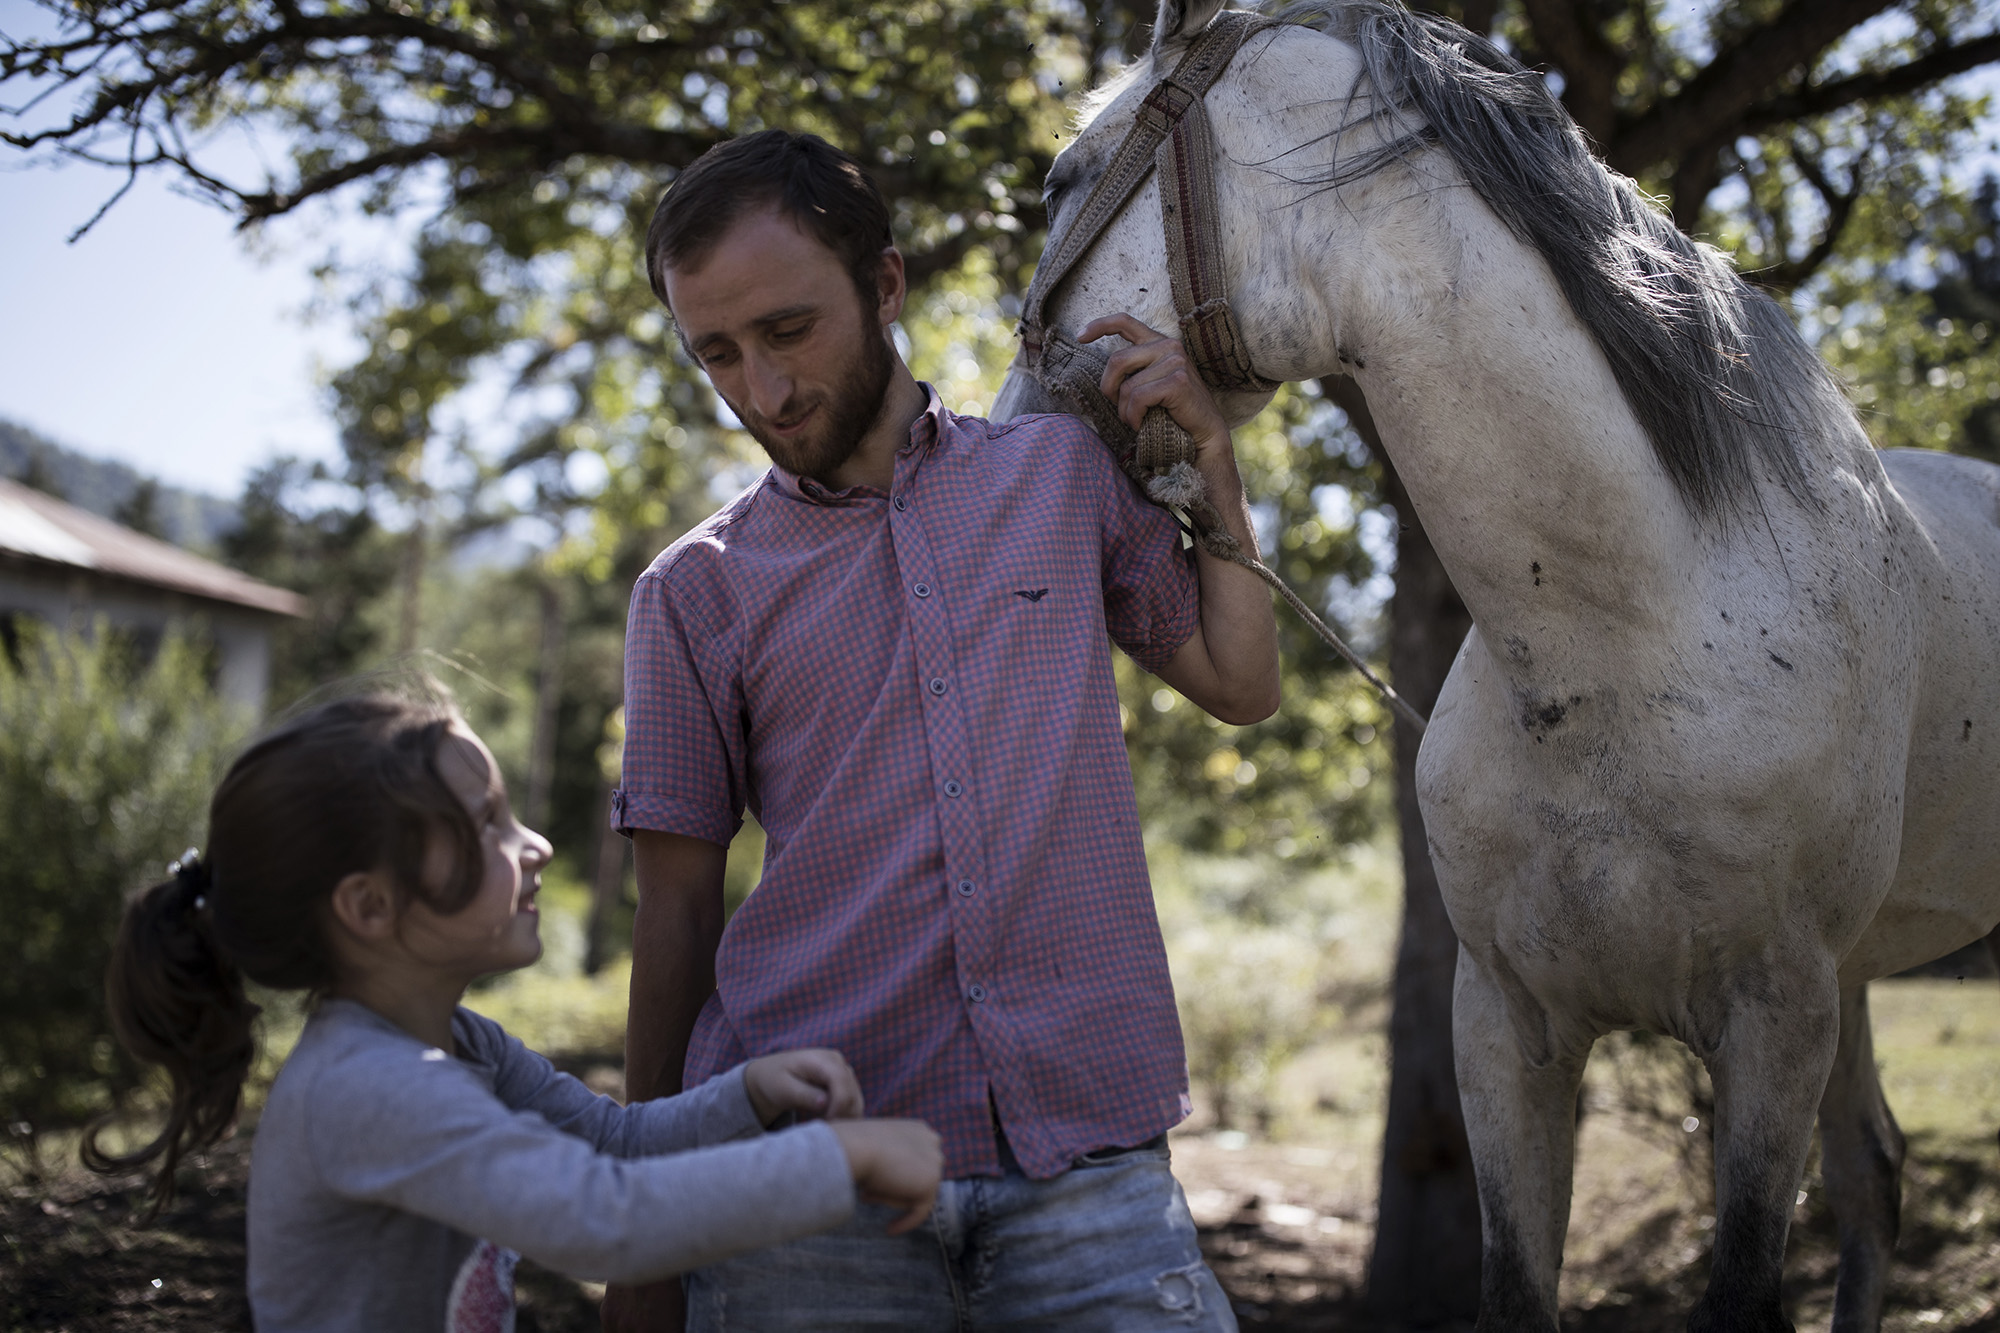 Jemal Ghonghadze with his daughter and horse in Likani. Photo: Ekaterina Anchevskaya/OC Media.